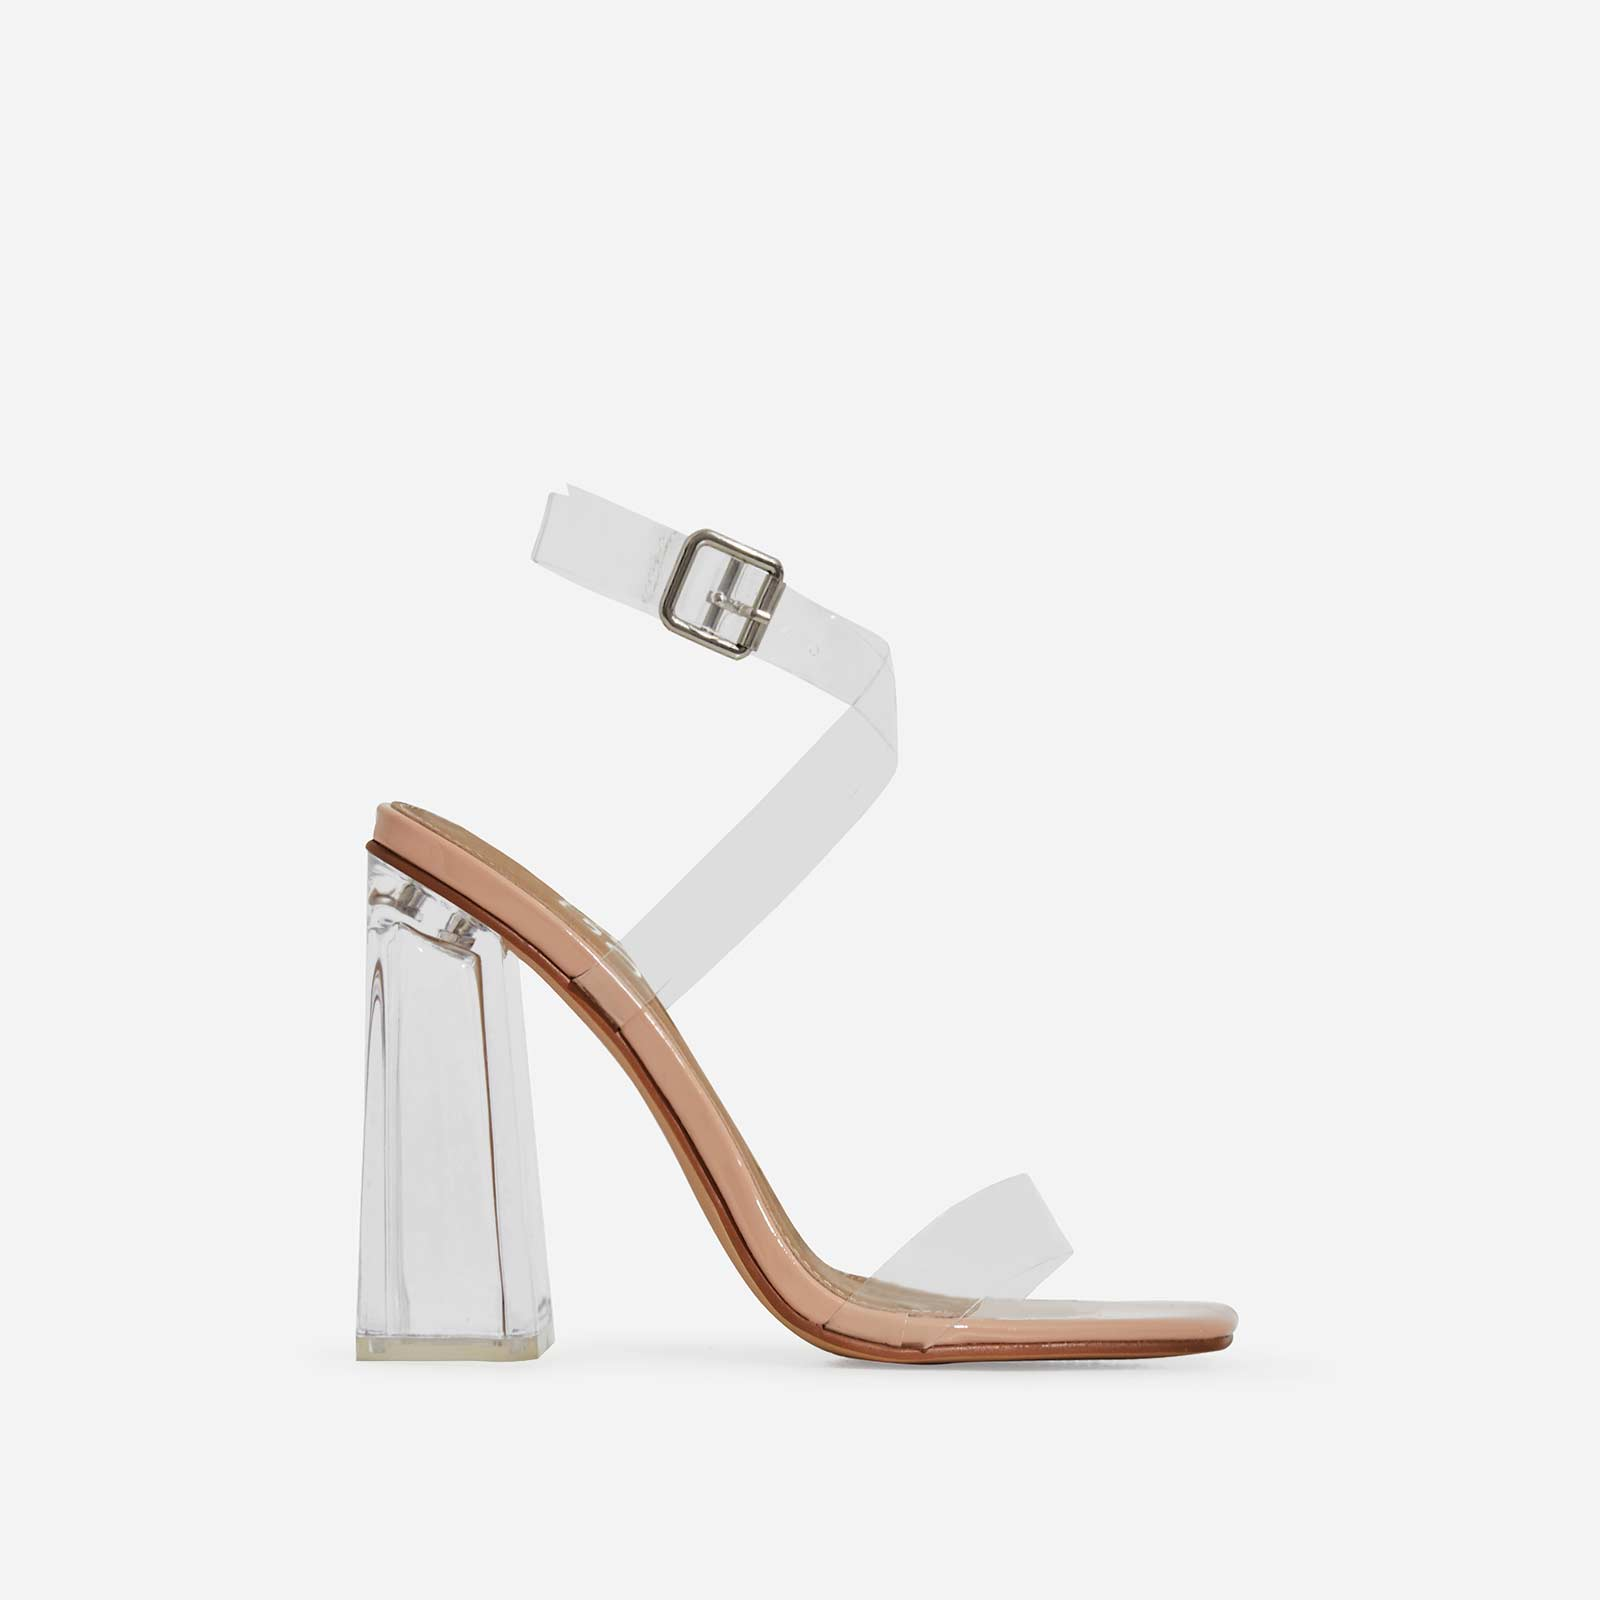 Saint Square Toe Perspex Flared Block Heel In Nude Patent